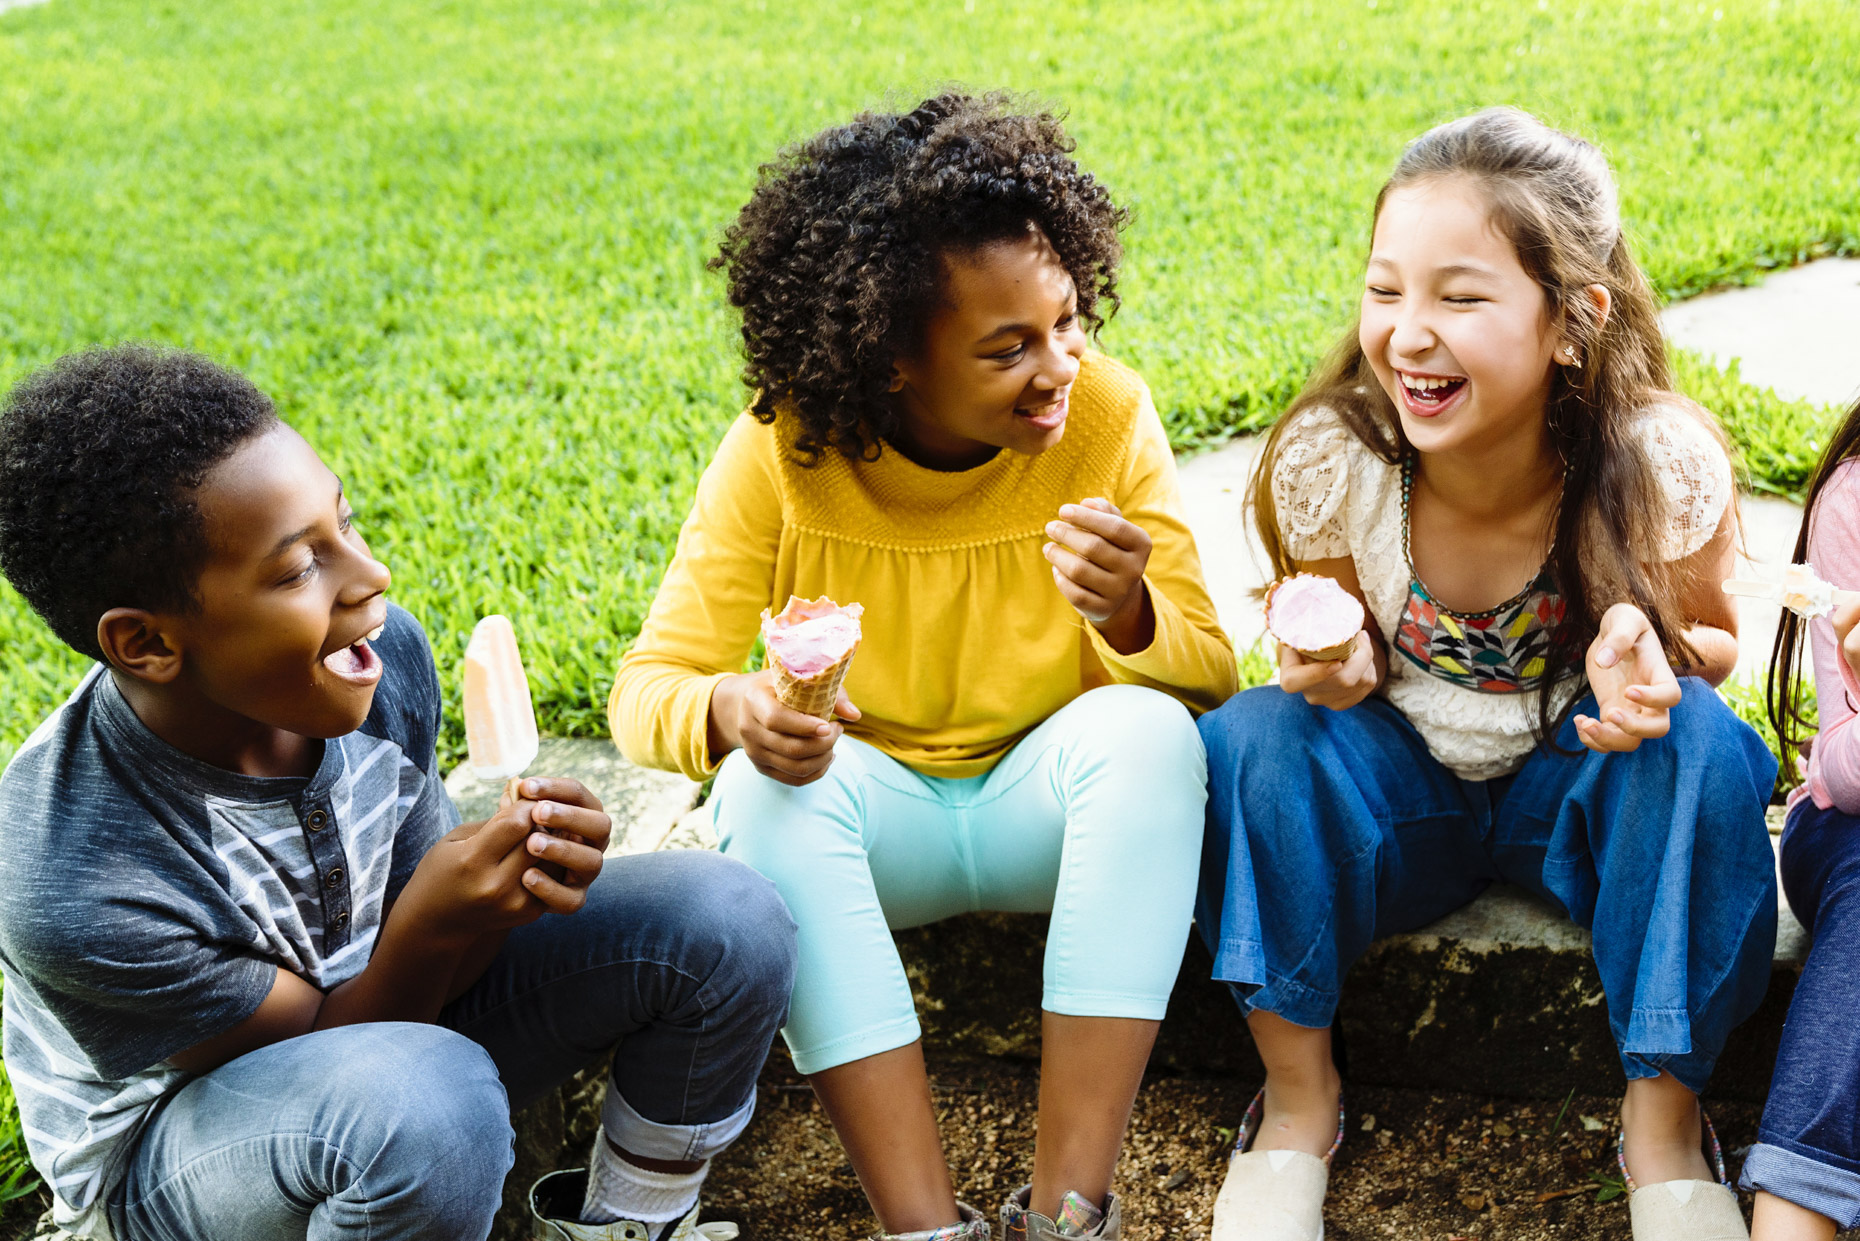 Inti St Clair photo of kids sitting in yard eating ice cream